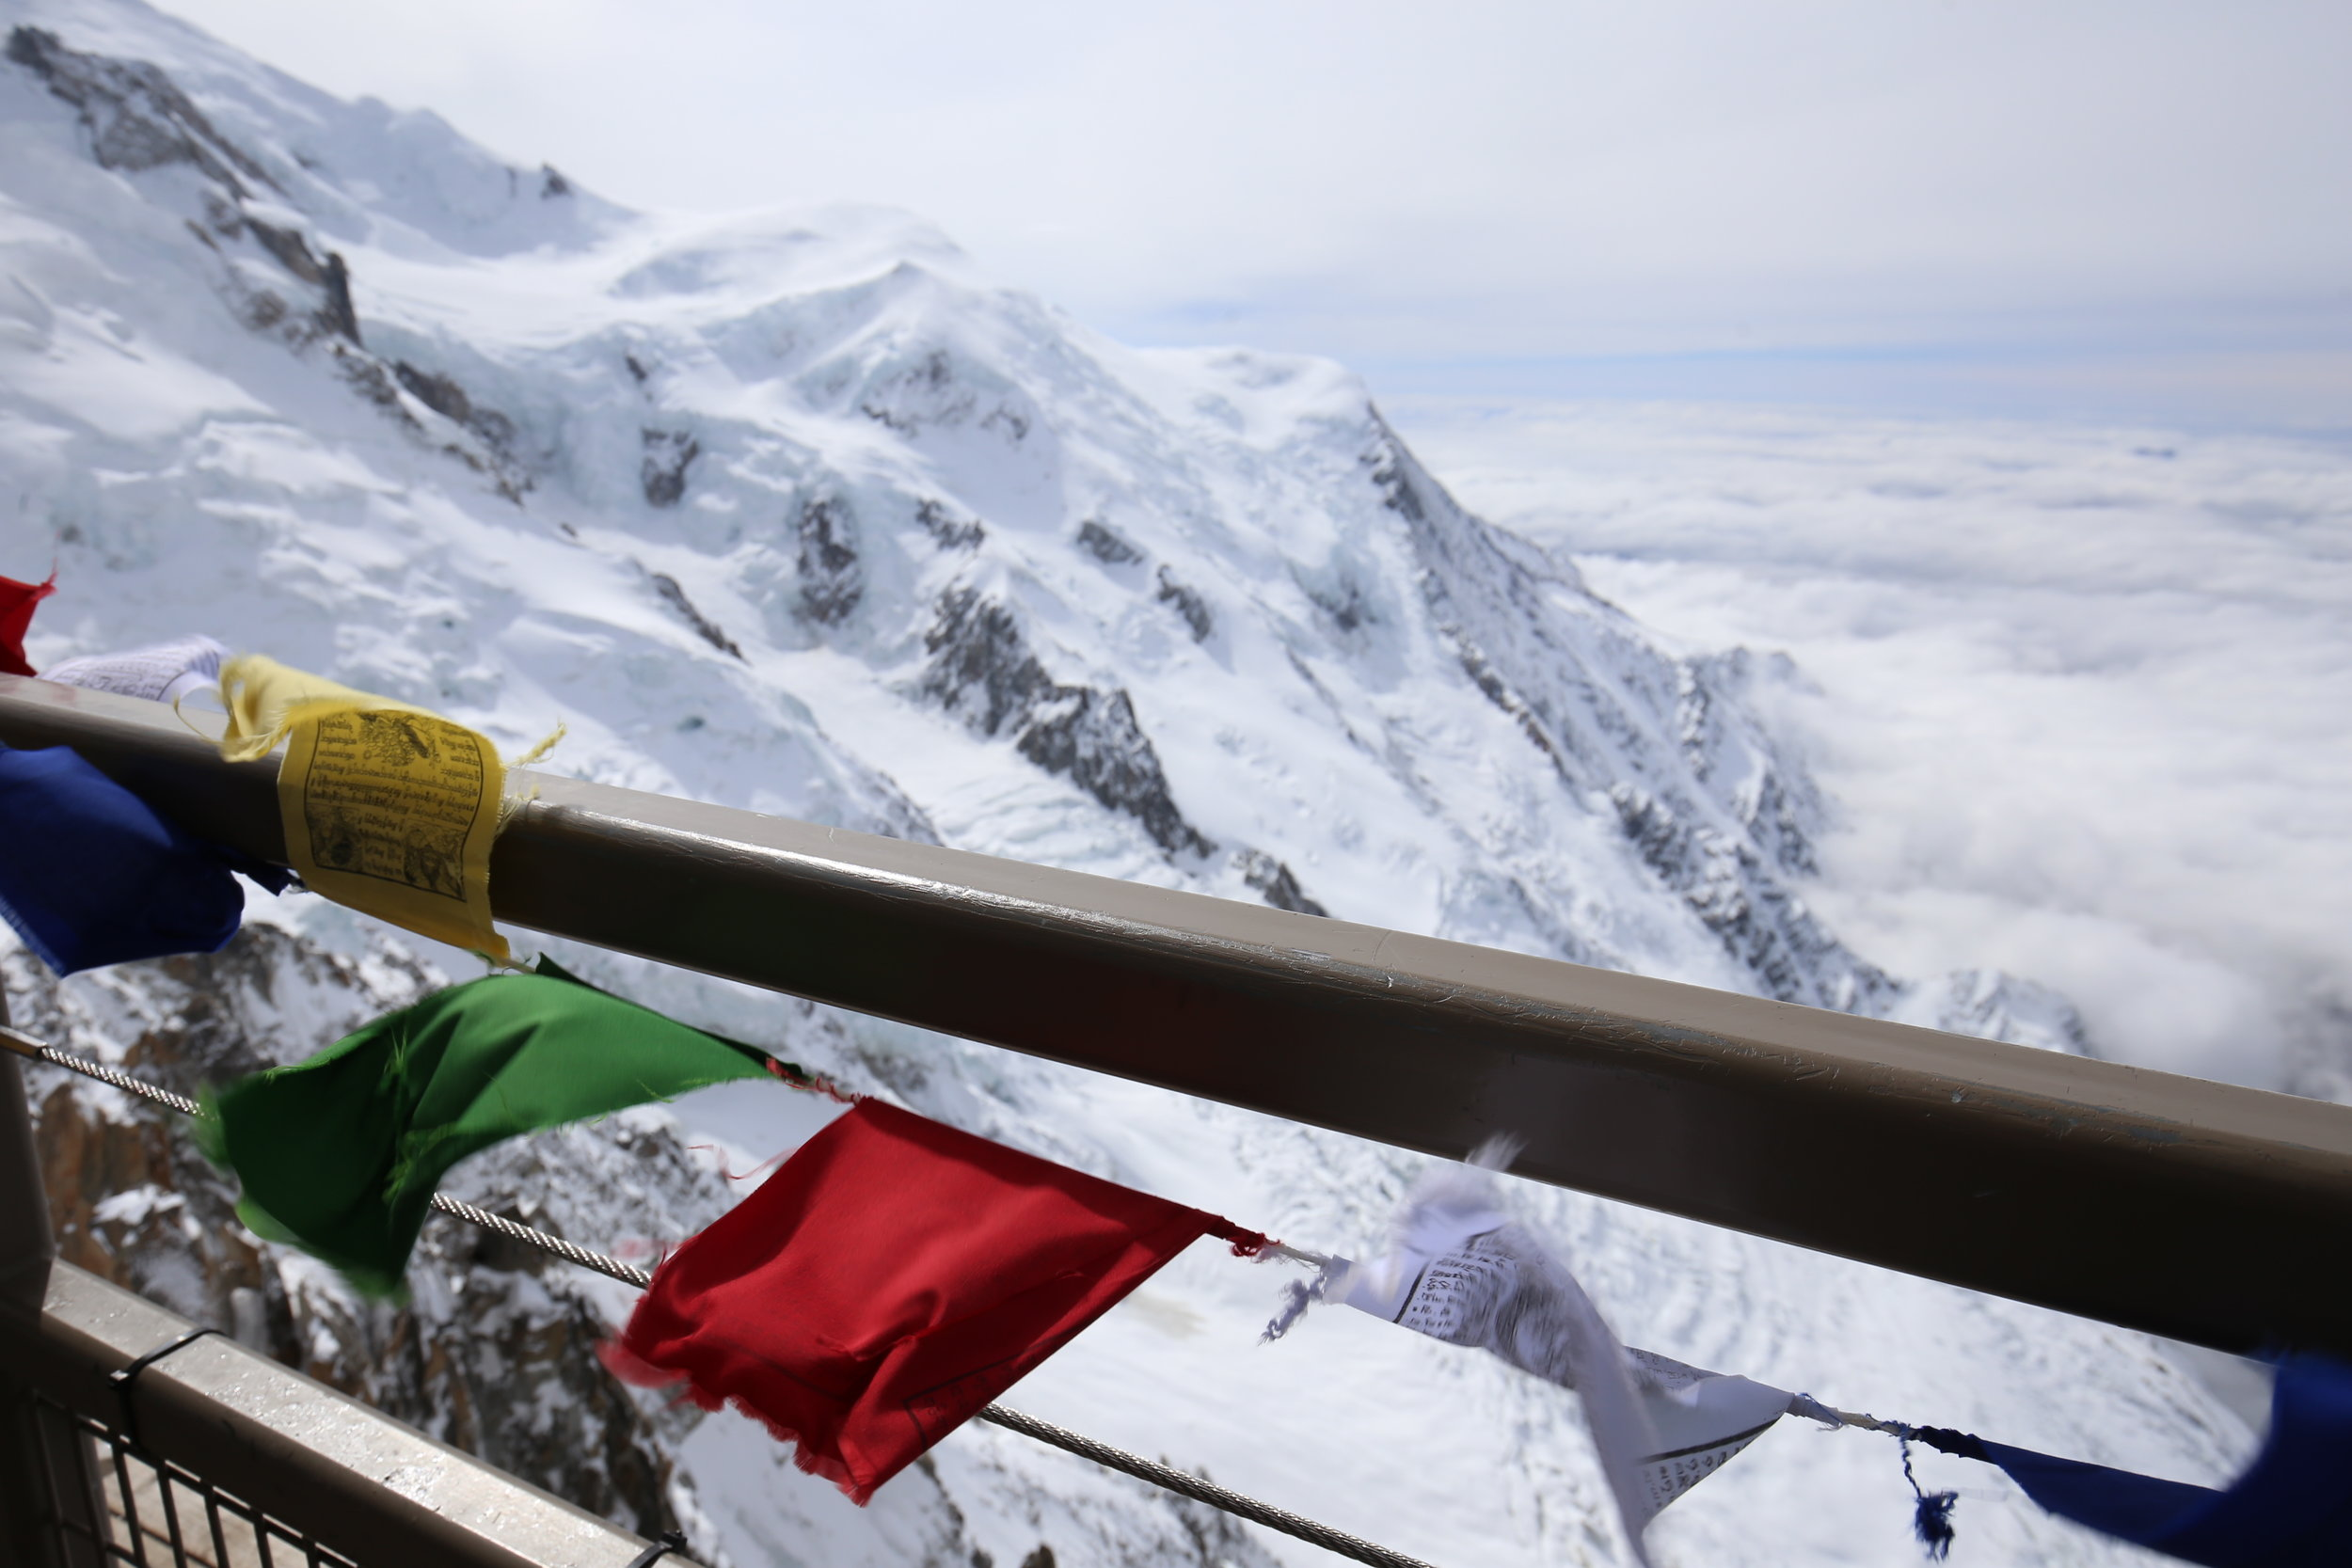 Prayer flags on the mountain.